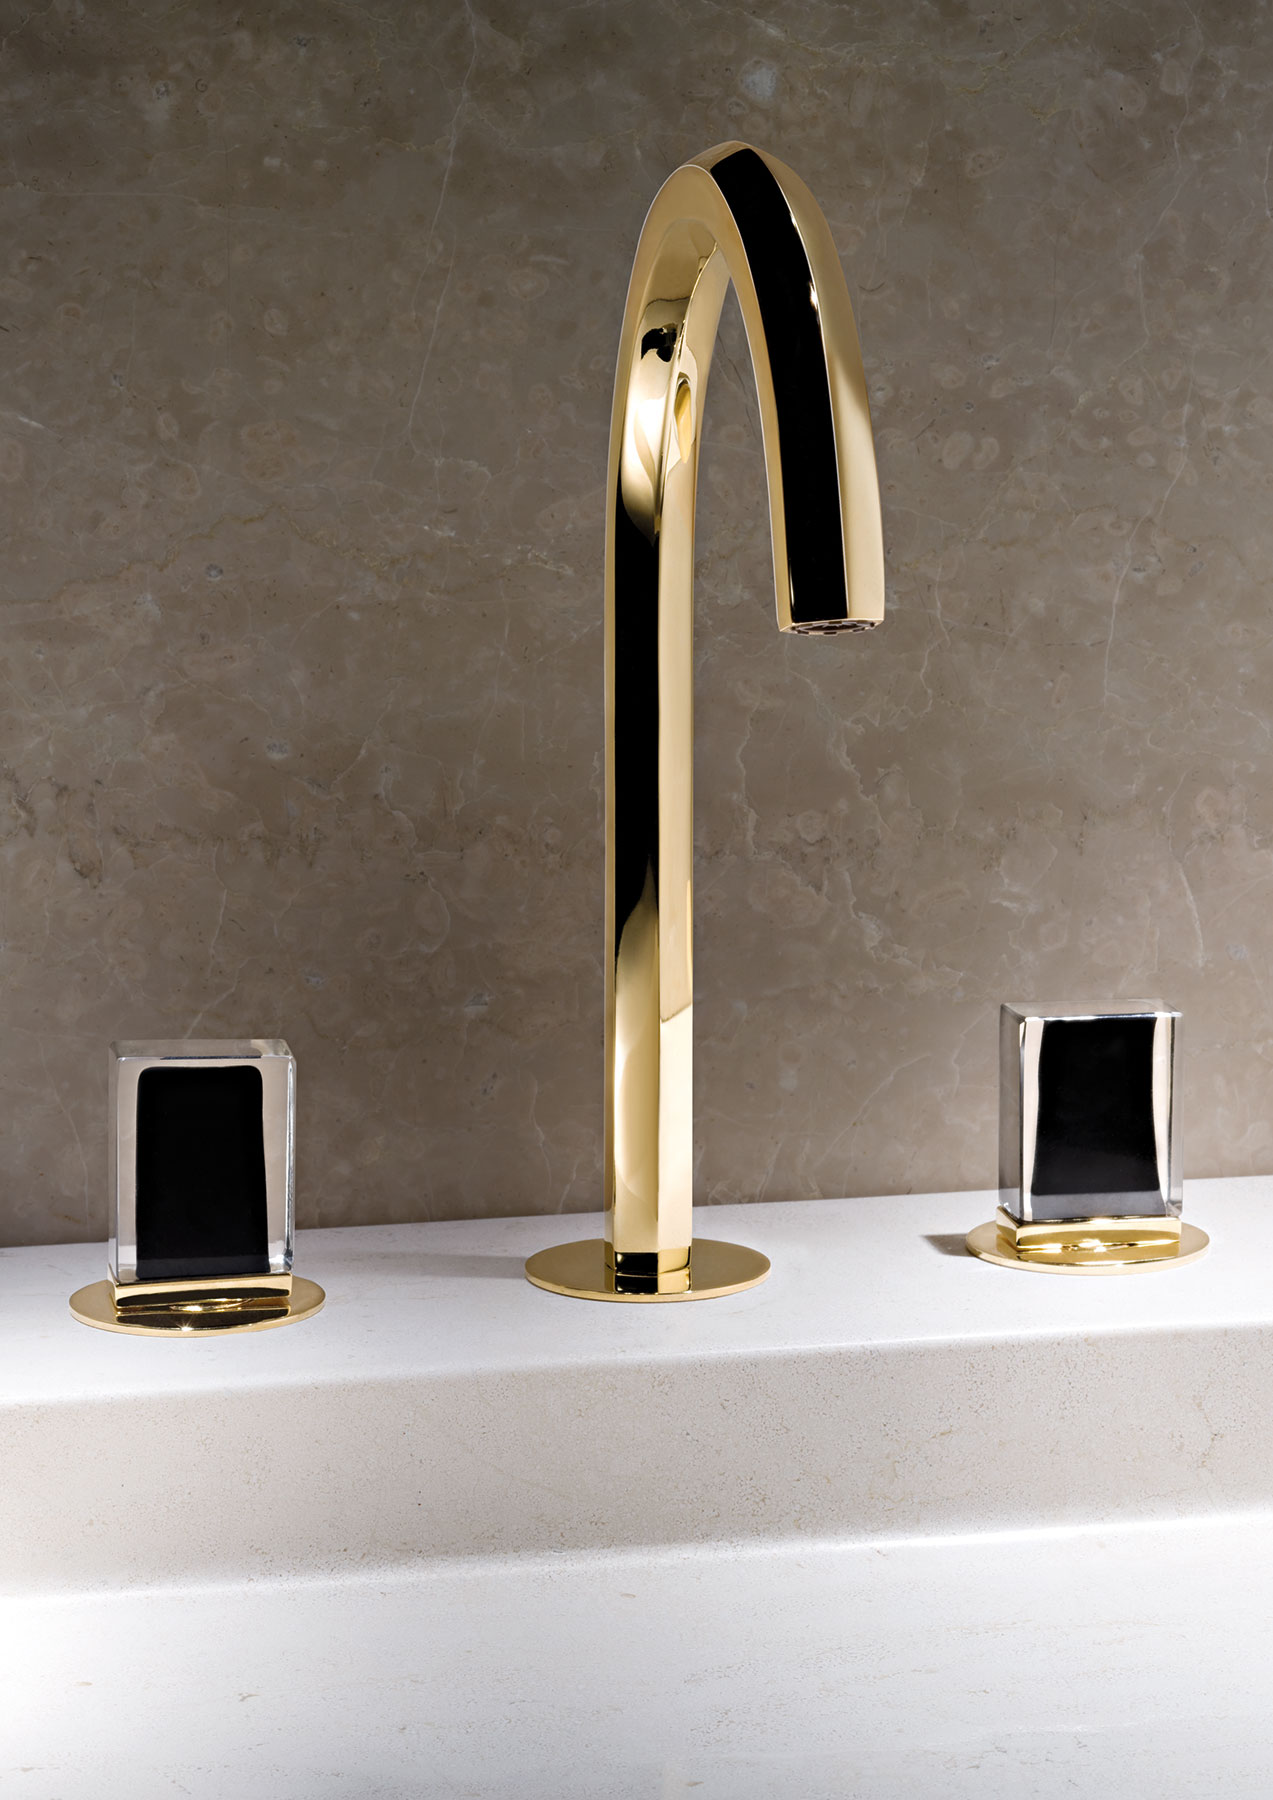 Contemporary Venezia Deck Mount Faucet